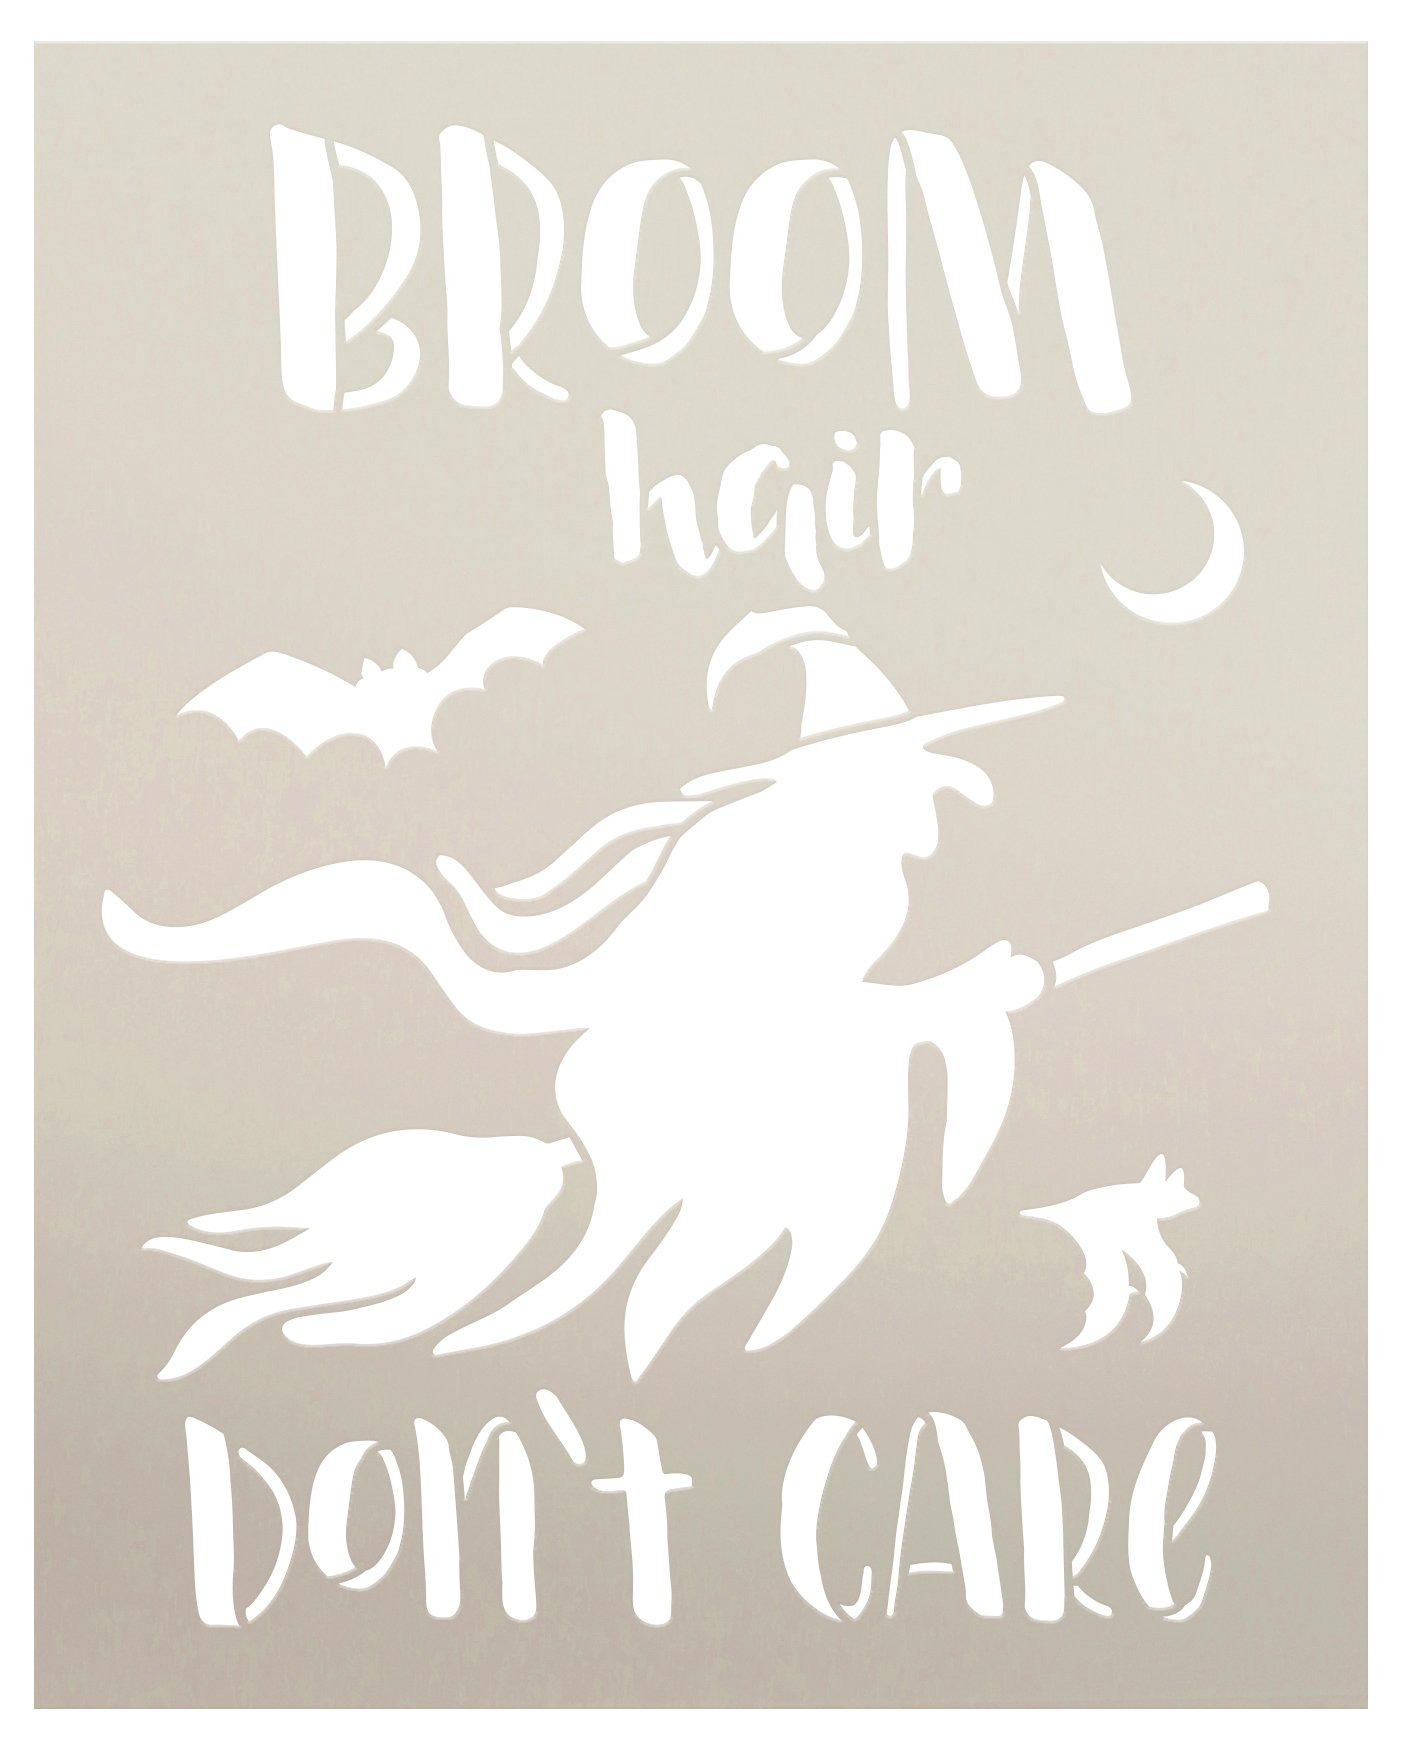 Broom Hair Don't Care Stencil by StudioR12   Craft DIY Fall Autumn Halloween Witch Home Decor   Paint Wood Sign Reusable Mylar Template   Select Size